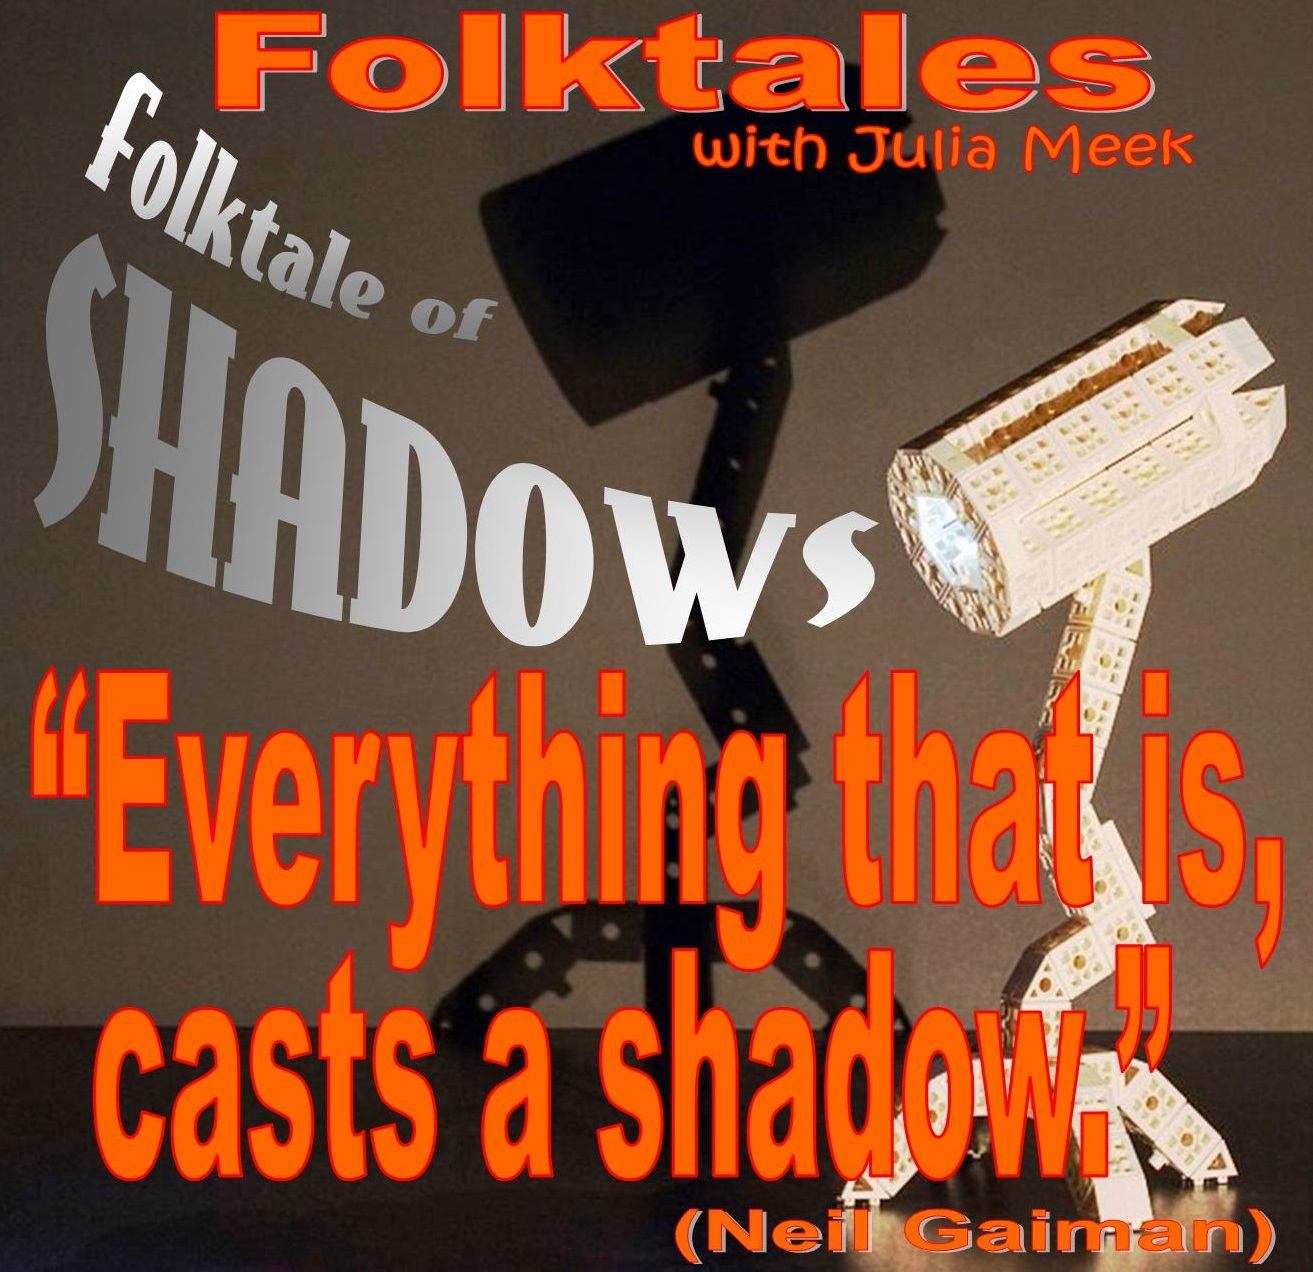 Caption: WBOI's Folktale of Shadows, Credit: Julia Meek